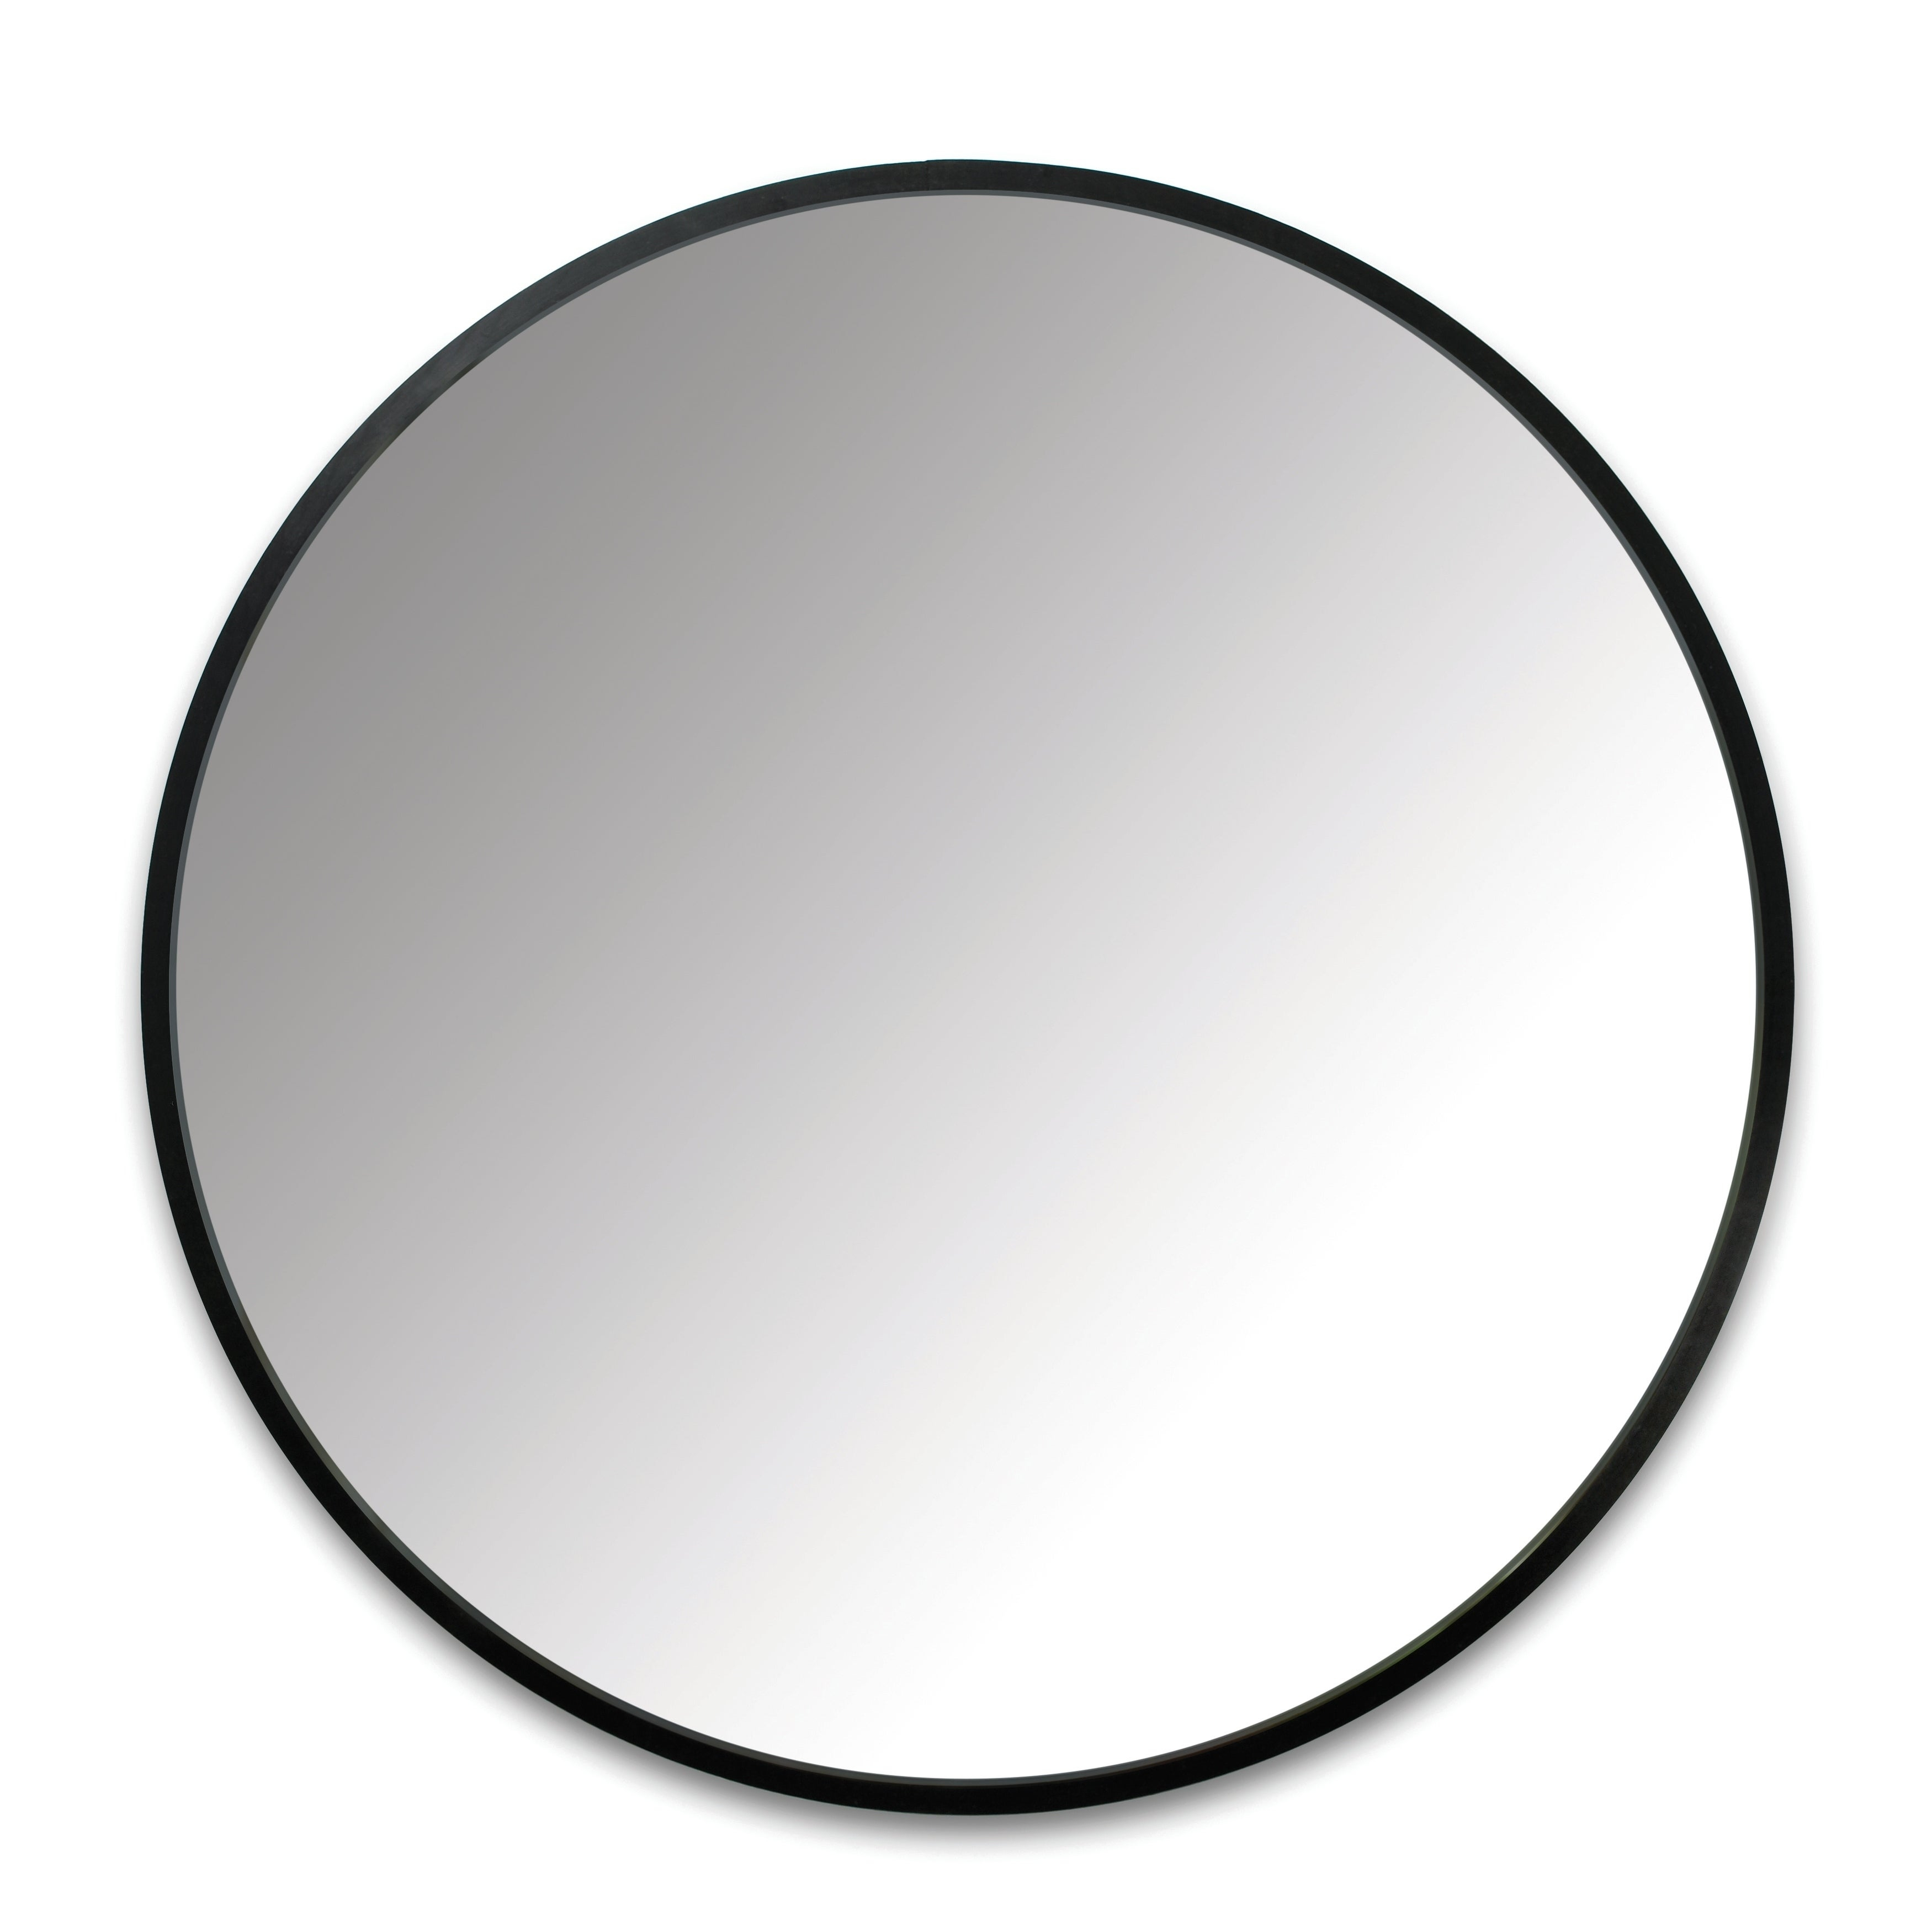 Modern & Contemporary Mirrors | Shop Online At Overstock In Guidinha Modern & Contemporary Accent Mirrors (Image 14 of 20)